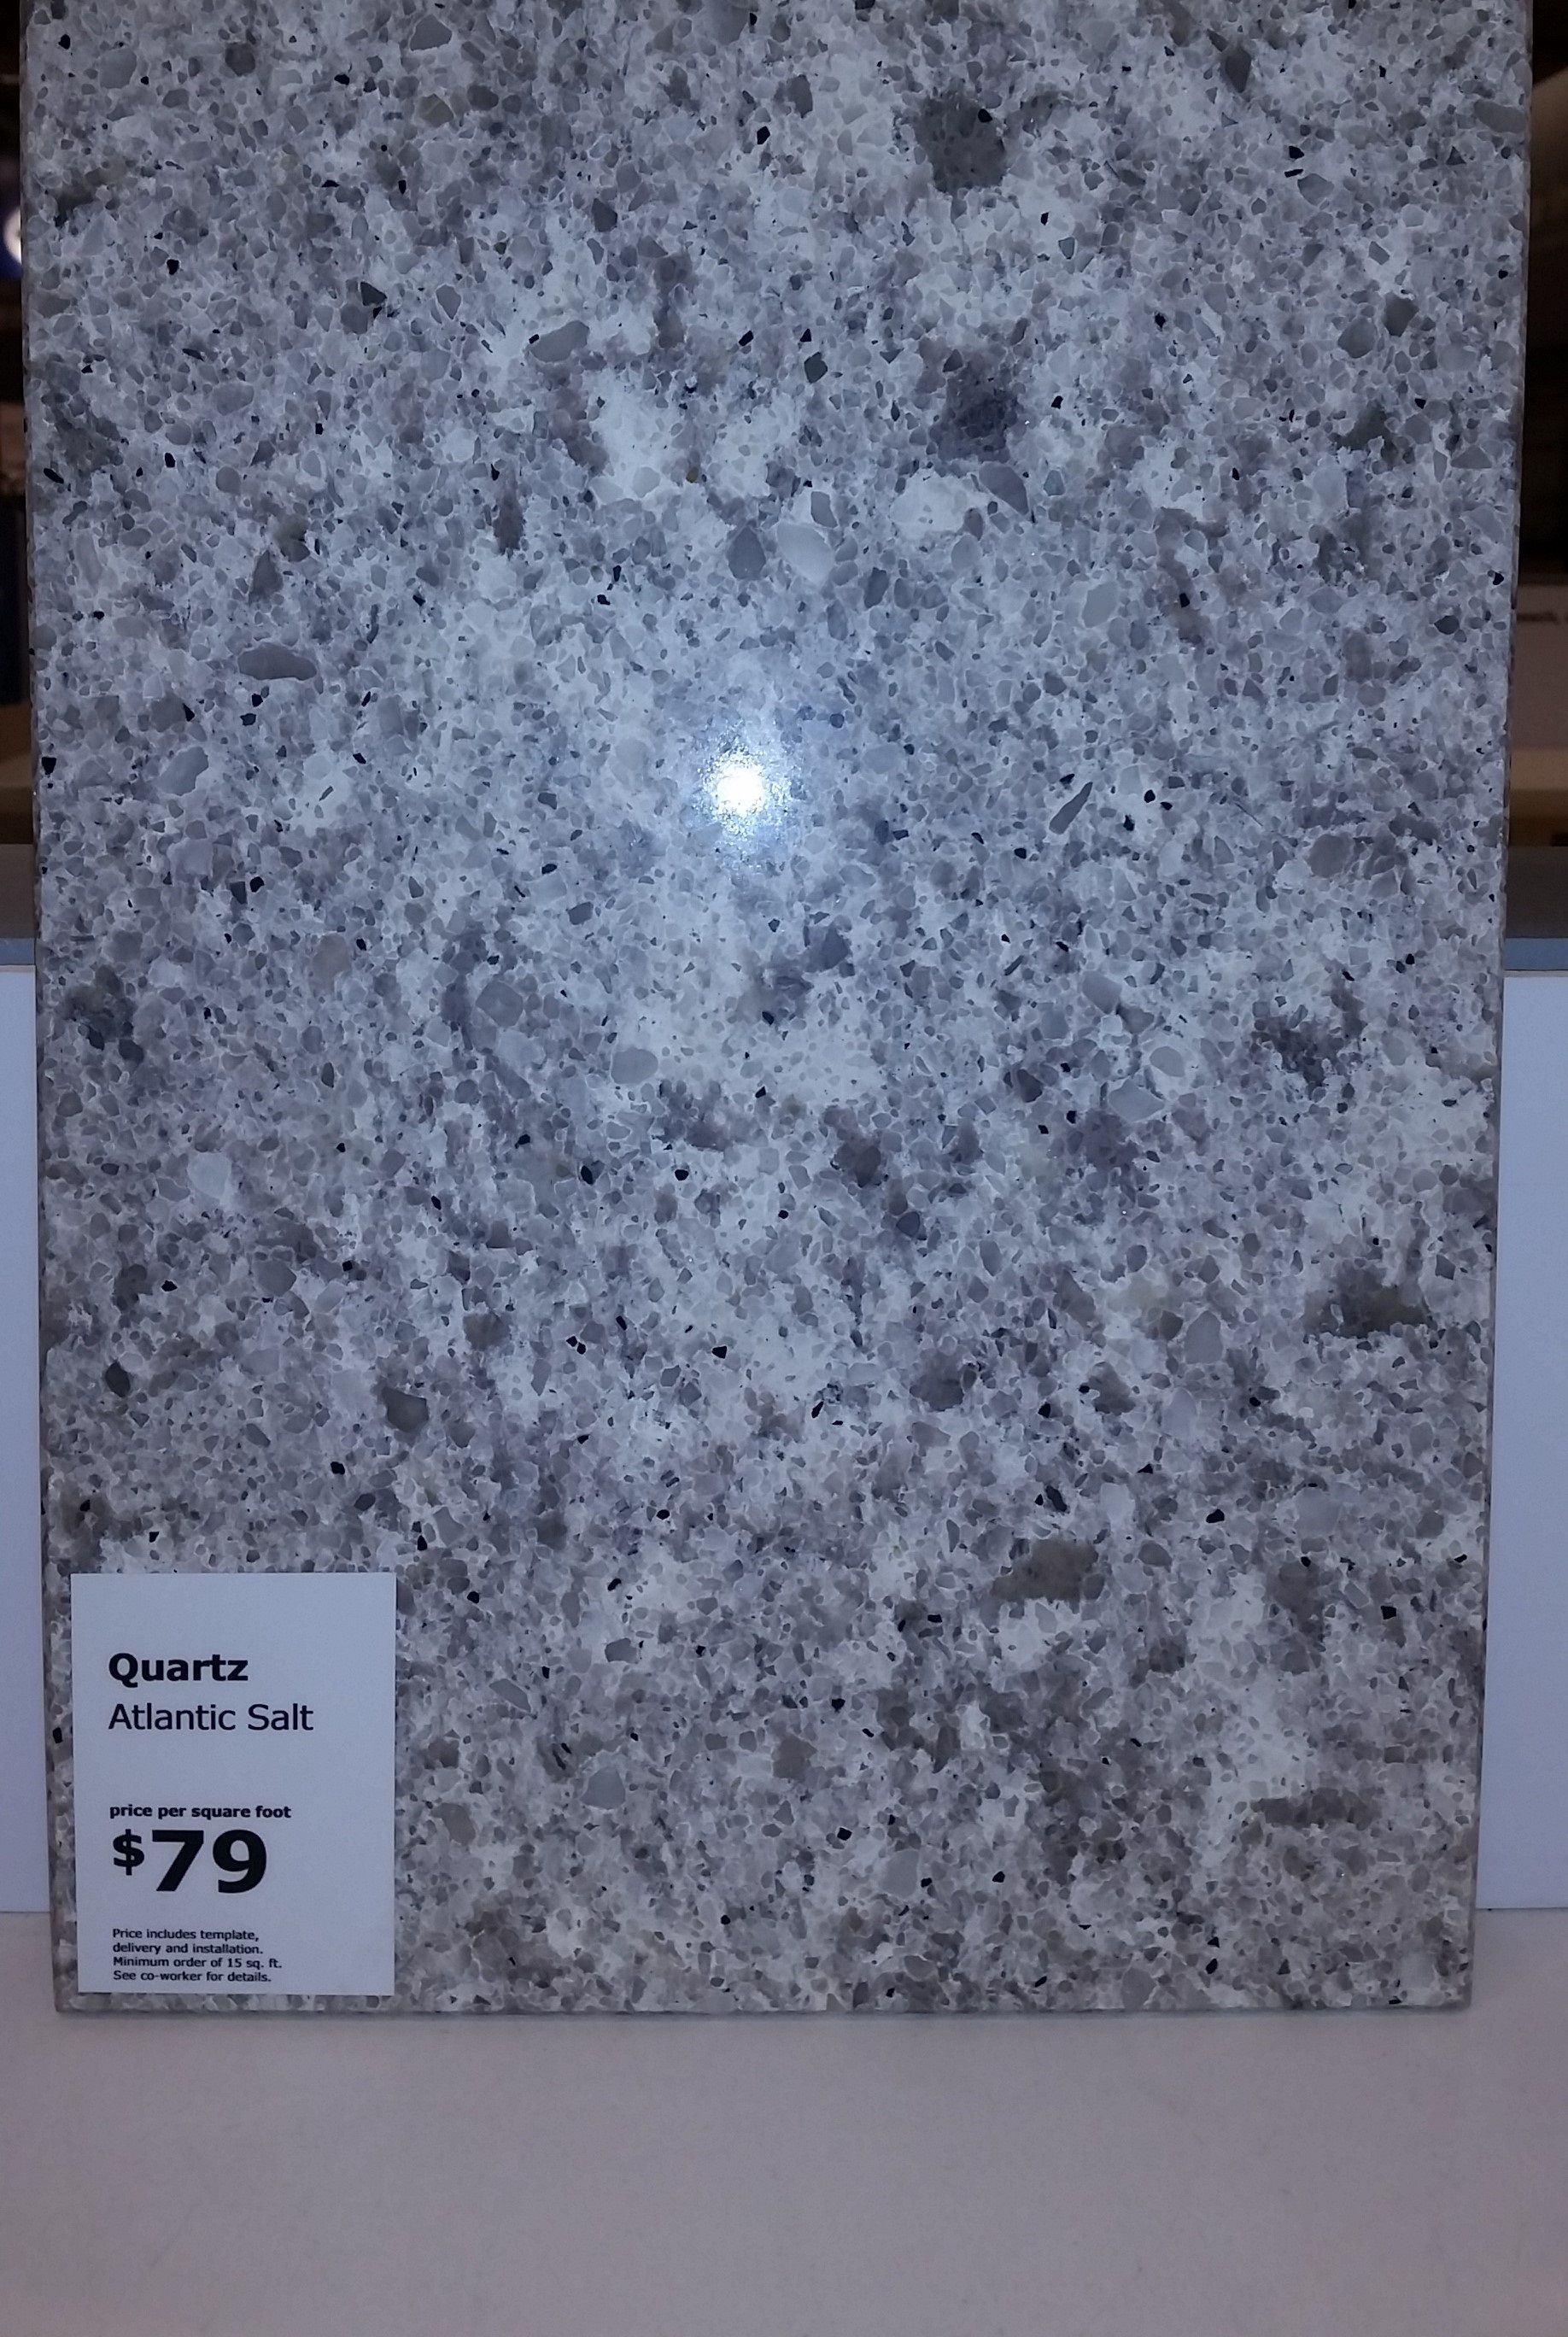 Ikea Atlantic Salt Quartz Countertop Total Cost 79 Per Square Foot Includes Professional Measuring Installati Quartz Countertops Countertops Ikea Kitchen